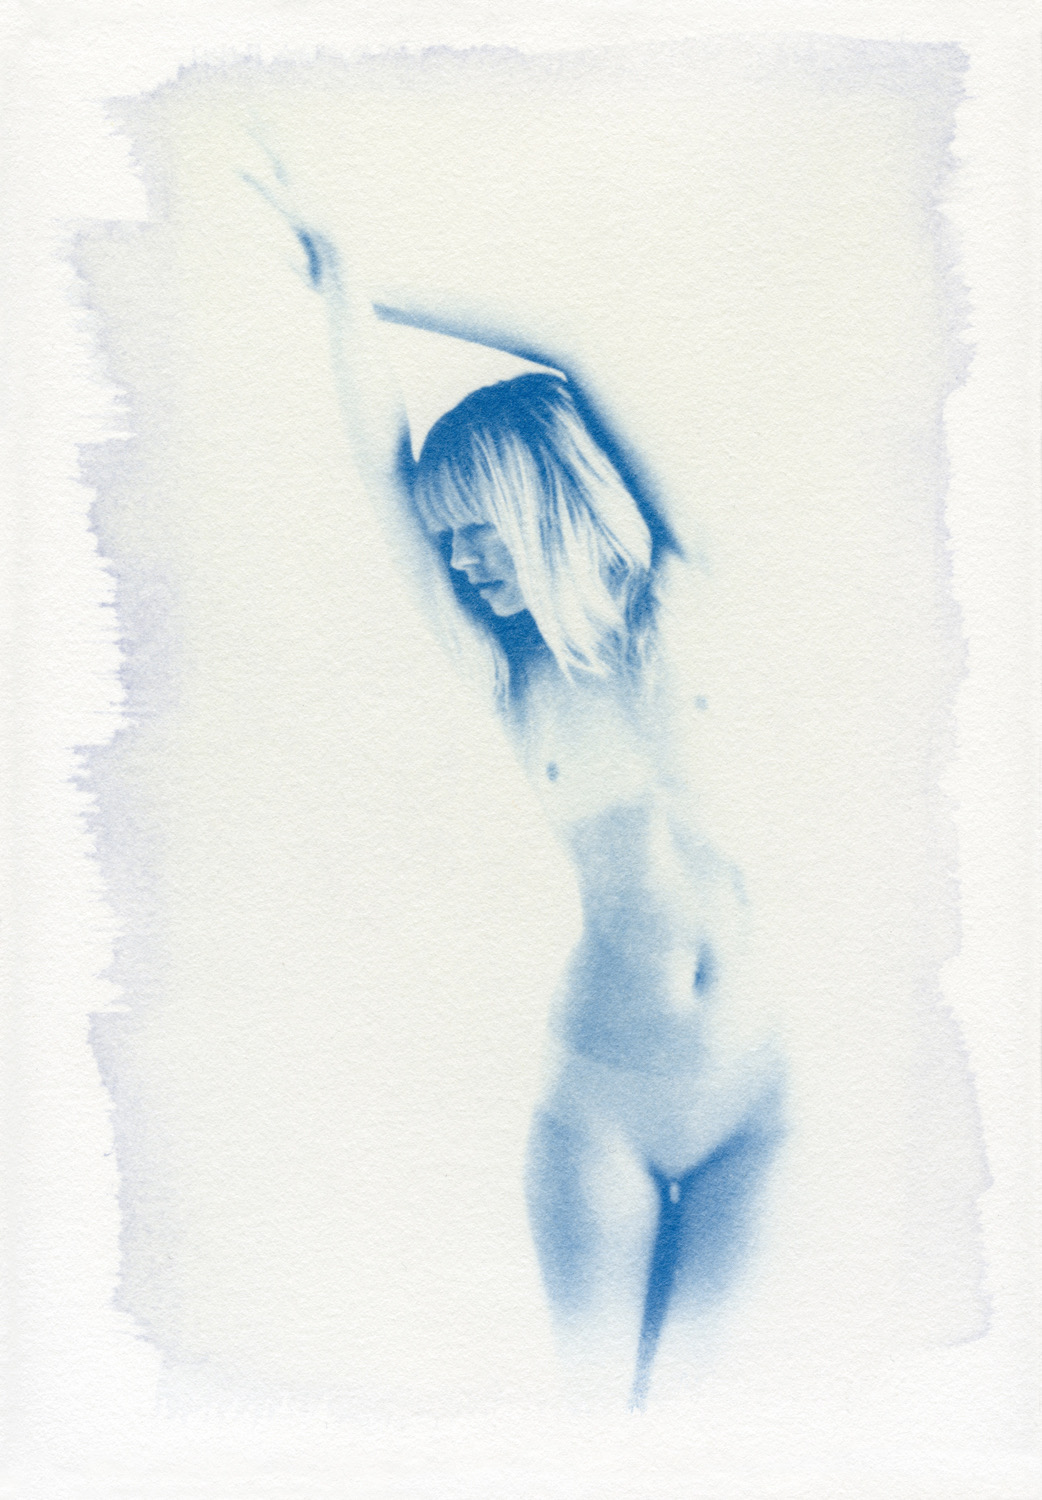 Dane Peterson // Ash // 2018 // Cyanotype on arches aquarelle // 8 x 11 inches